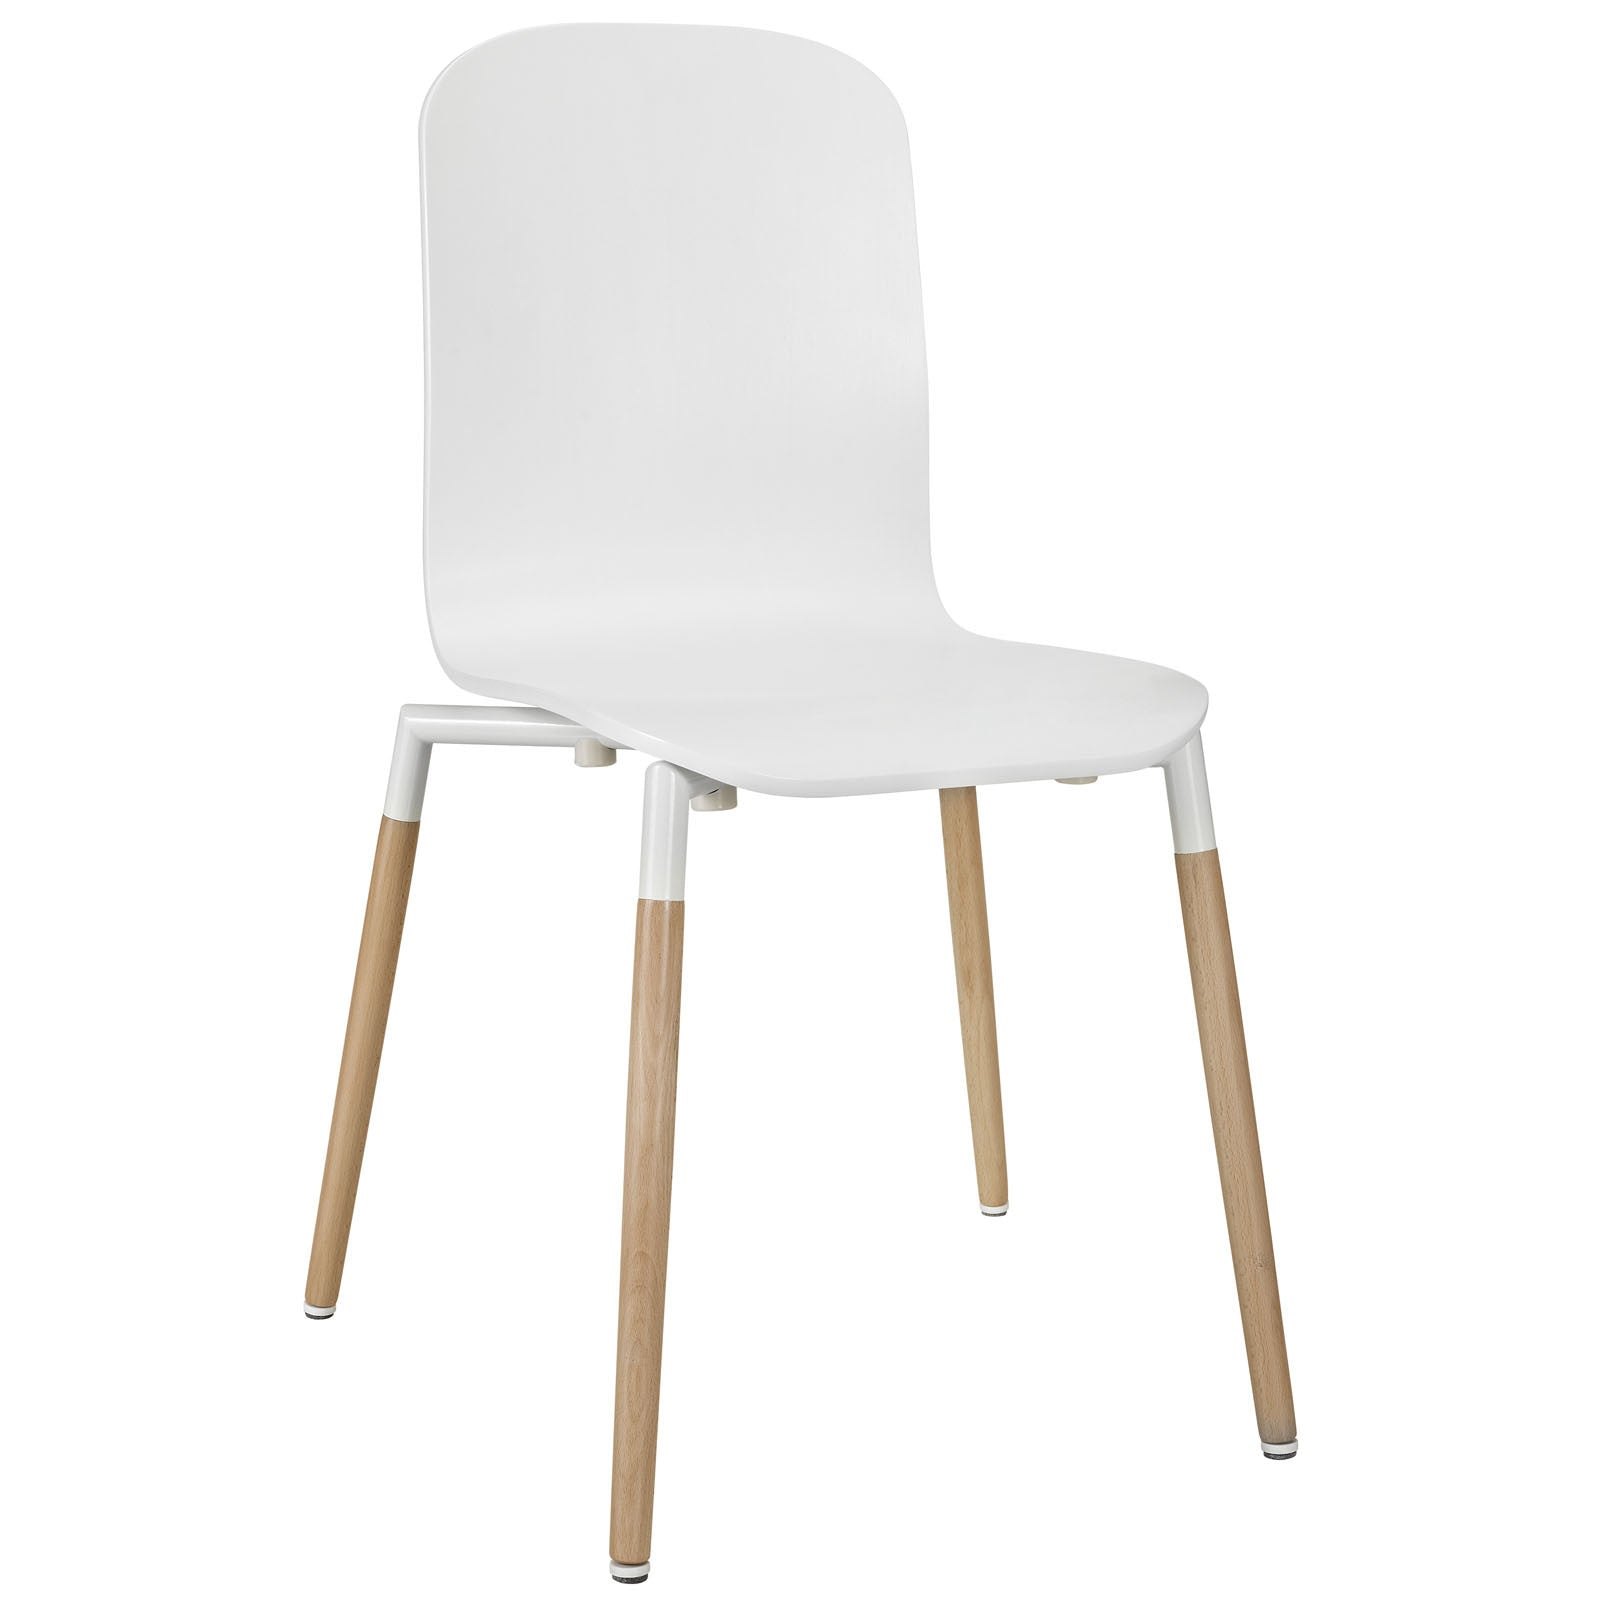 Sabin Wood Chair White